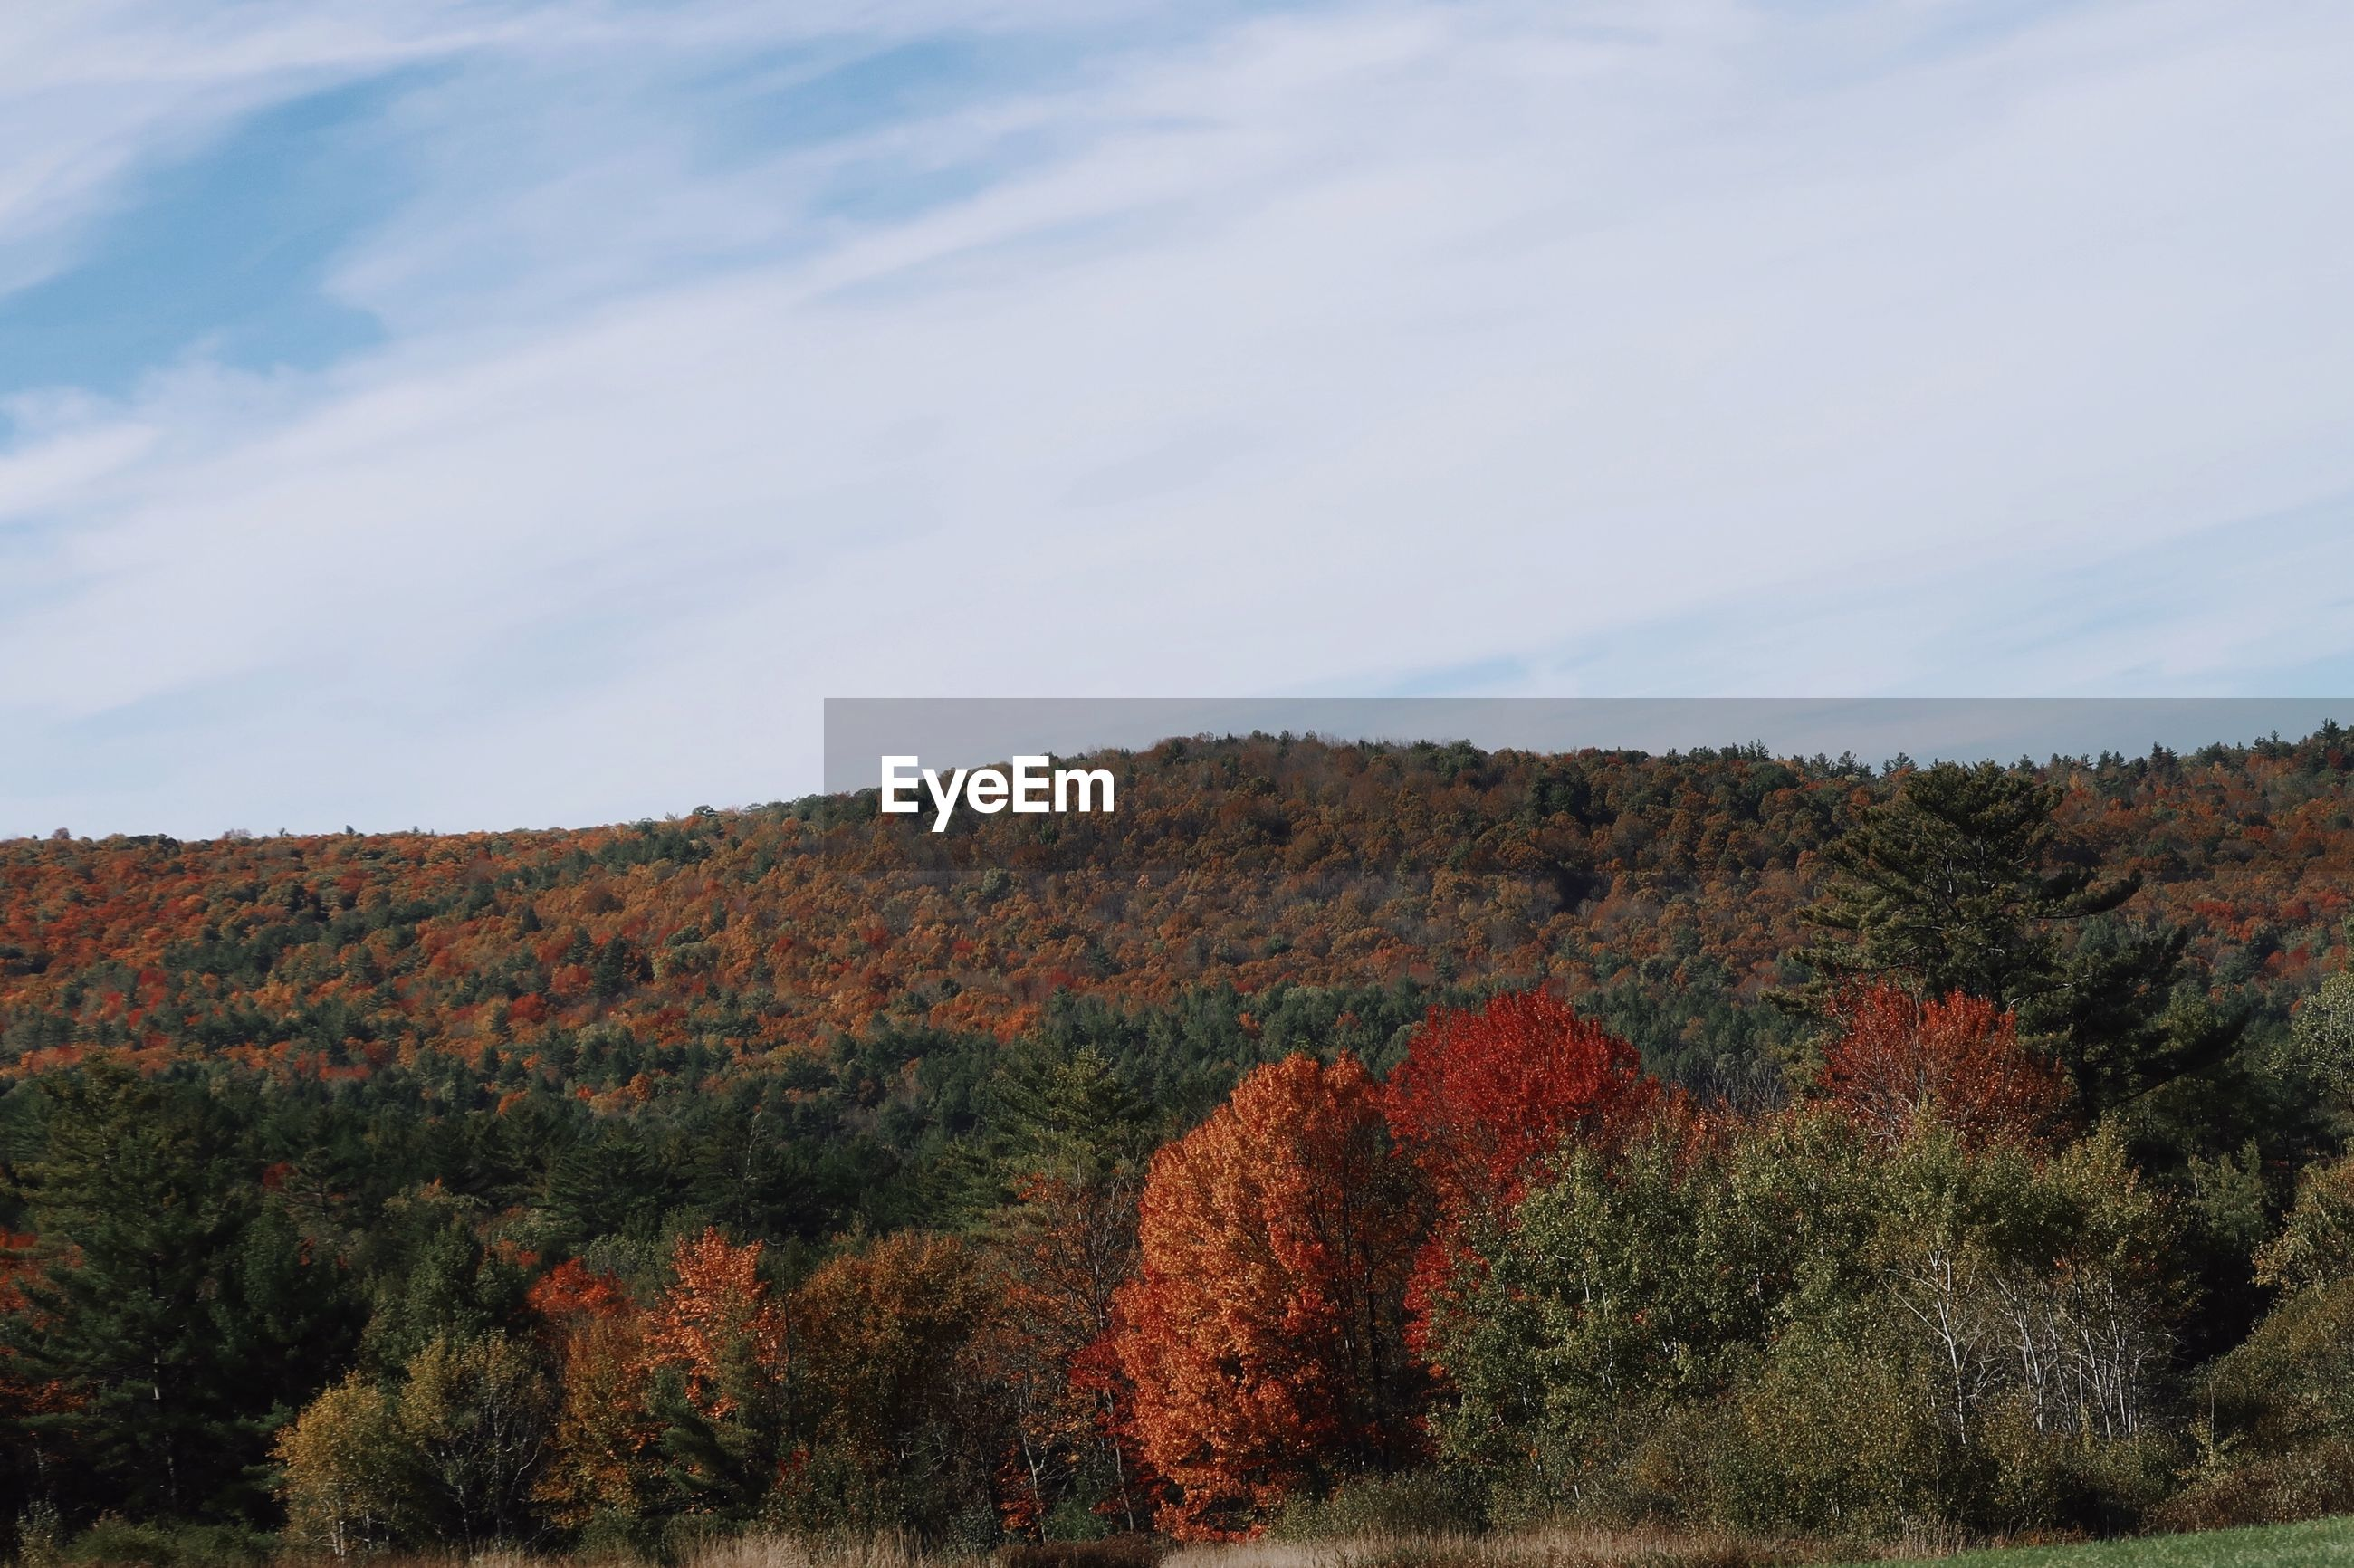 Plants growing on land against sky during autumn